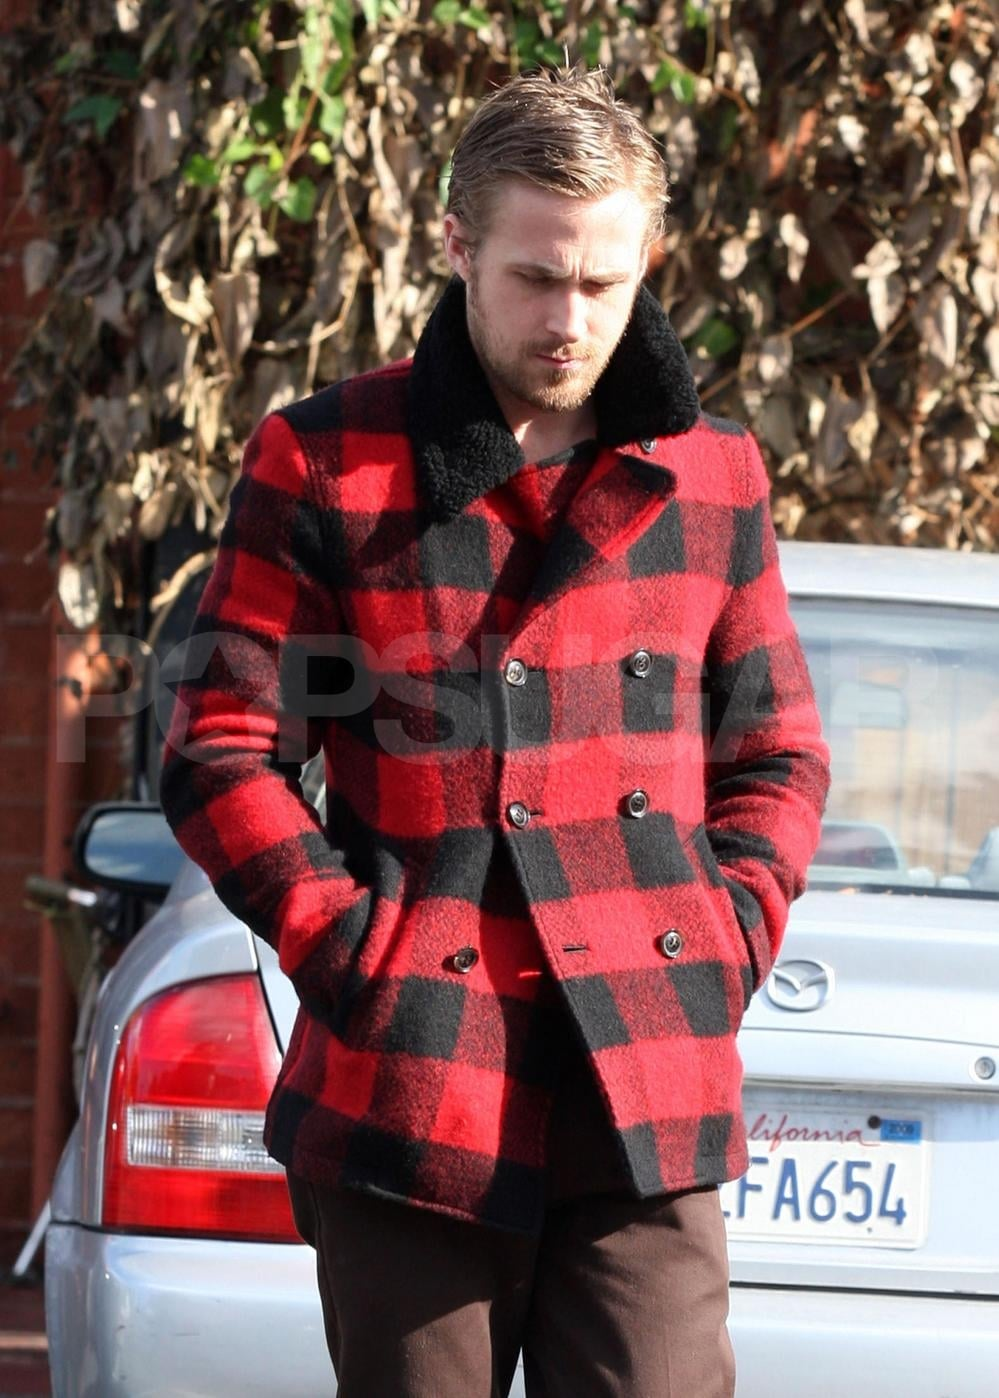 PopsugarCelebrityRyan GoslingRyan Gosling a Little Pouty in His Pretty Plaid Pea CoatDecember 19, 2008 by Molly Goodson5 SharesChat with us on Facebook Messenger. Learn what's trending across POPSUGAR.Ryan Gosling got into the festive — or lumberjack — spirit out to lunch with a friend in LA yesterday. Earlier this week we had a moment of nostalgia for Ryan and Rachel, but the two are working on their separate projects these days. The Canadian actor and budding musician is apparently hard at work recording an album with his band in California and I bet he doesn't get too many opportunities to wear that coat in his current location. Thanks to the unusually yucky week on the West Coast, maybe Ryan feels a little more like he's at home this holiday season. Share This LinkCopyShare This LinkCopyShare This LinkCopyShare This LinkCopyShare This LinkCopyPacific Coast News Online Join the conversationChat with us on Facebook Messenger. Learn what's trending across POPSUGAR.Ryan GoslingFrom Our PartnersWant more? - 웹